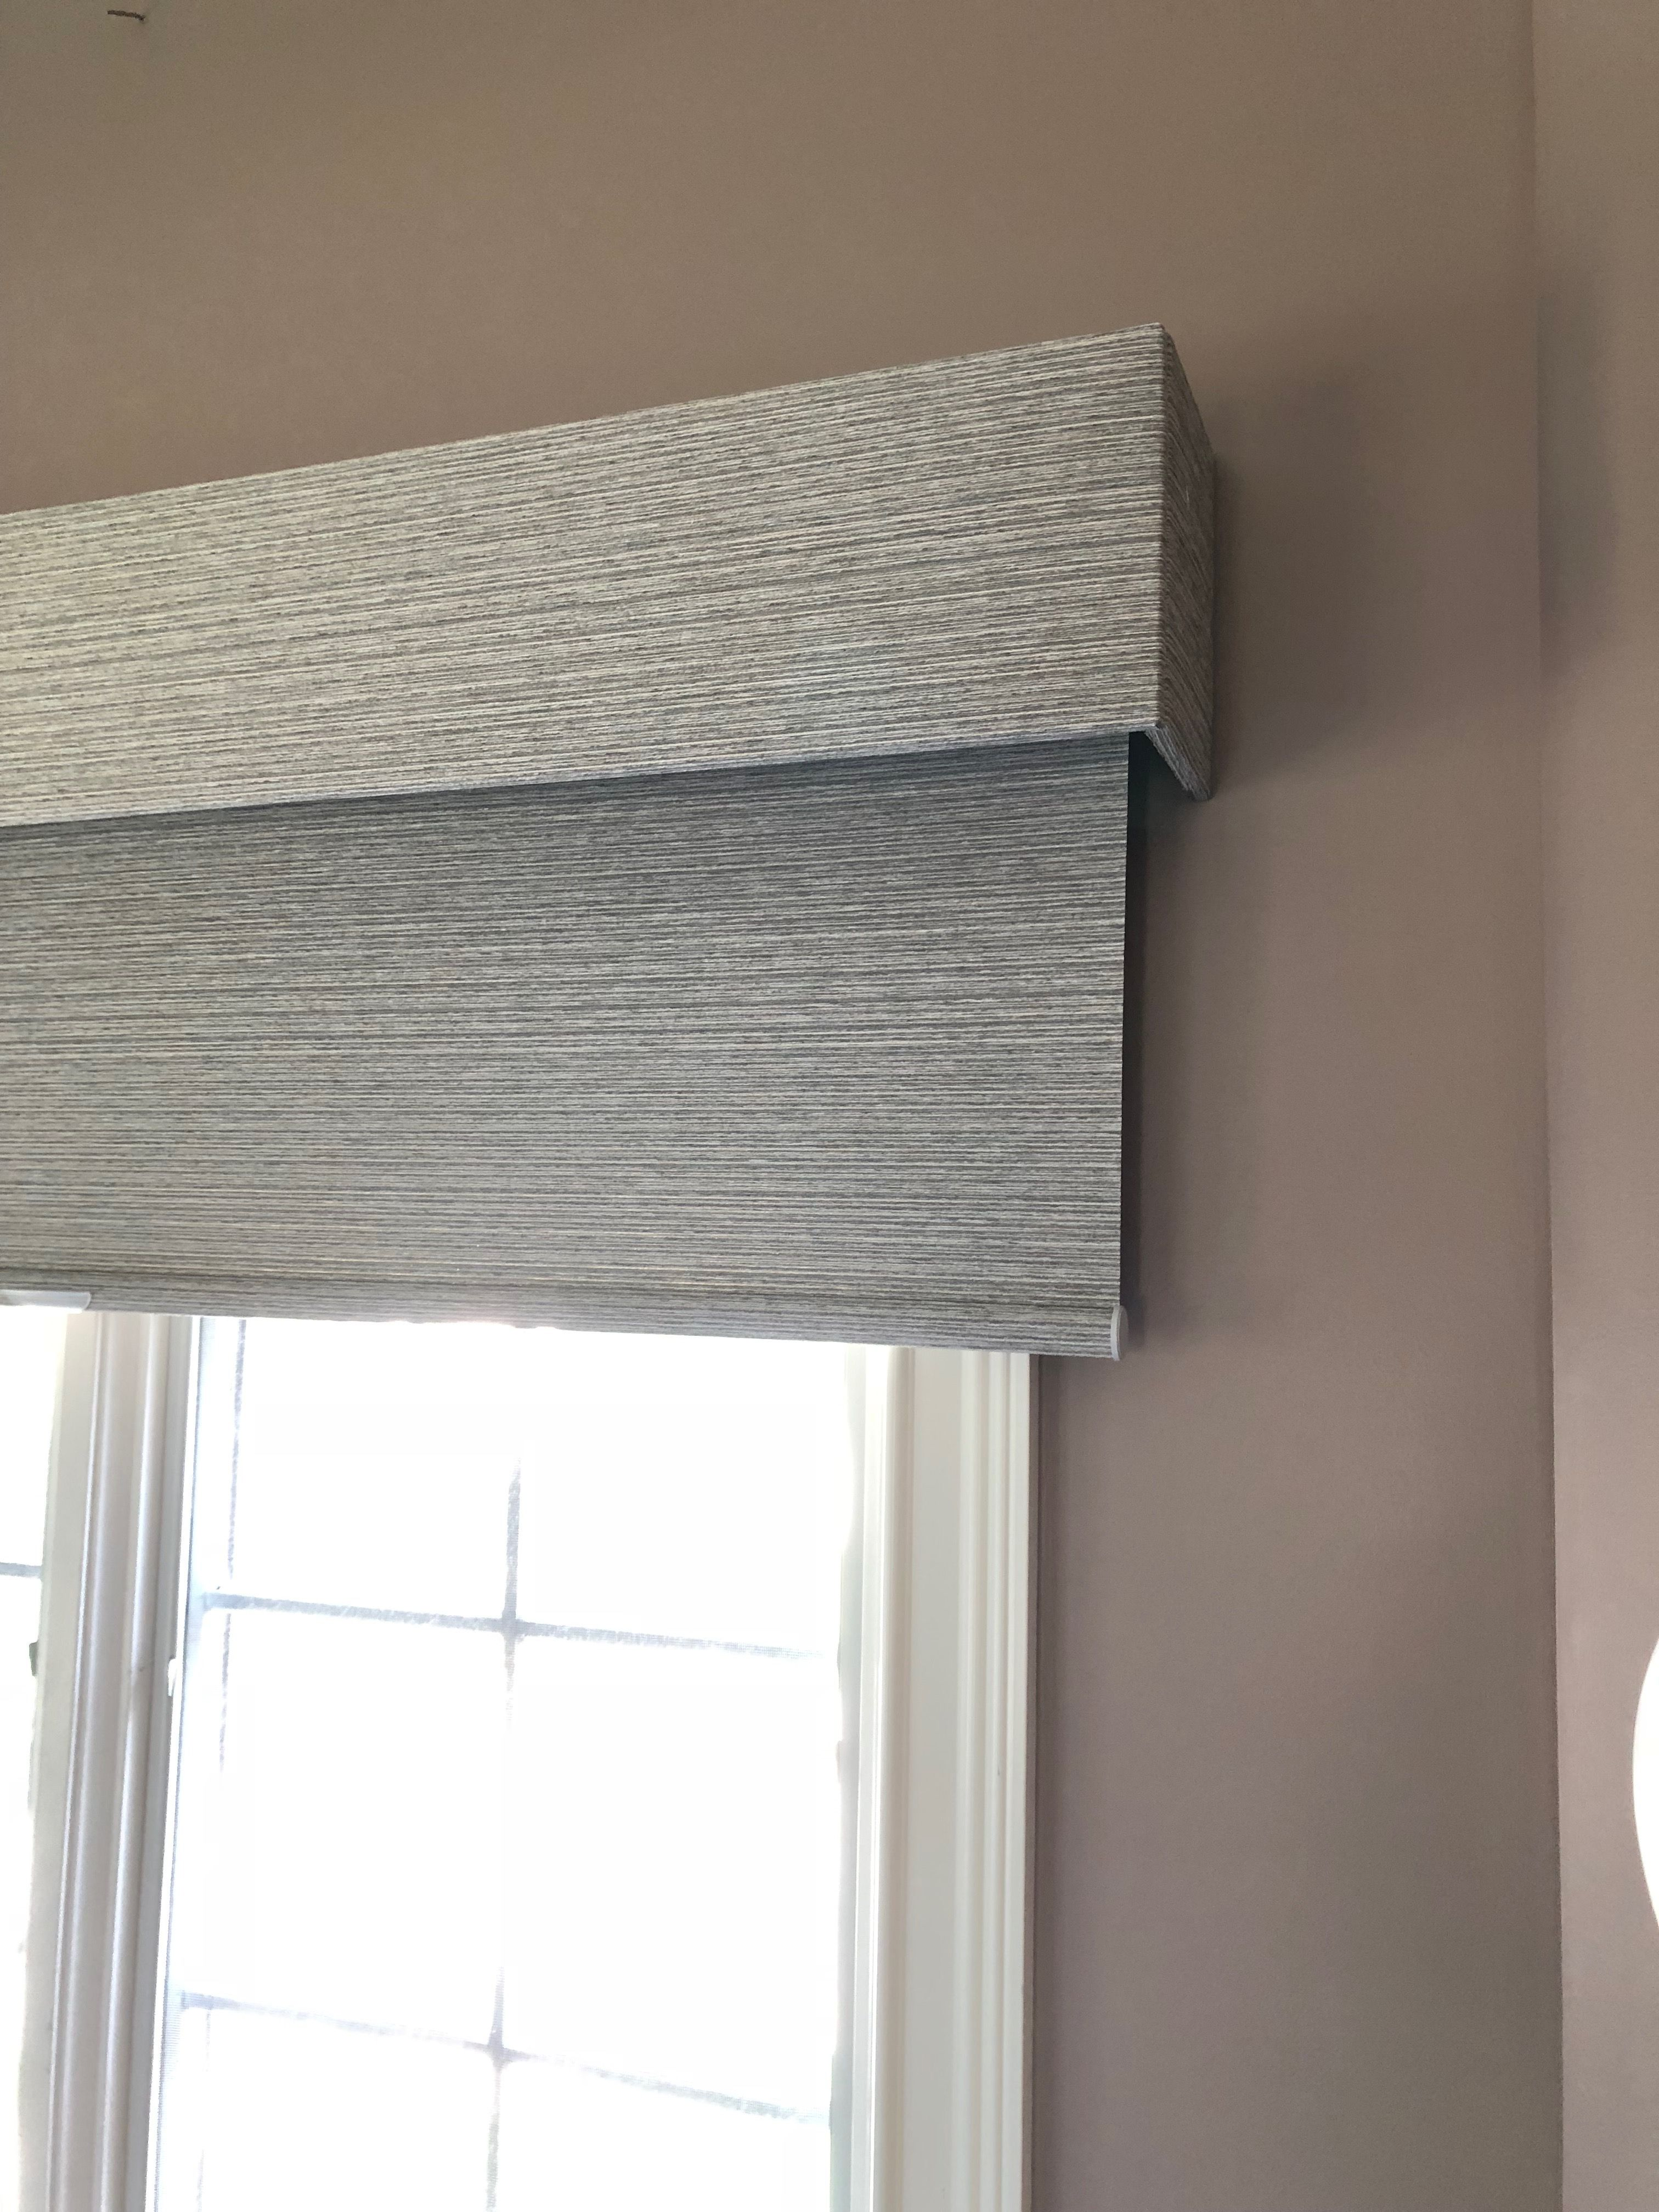 Blackout Roller Shades And Valances For A Boys Room In